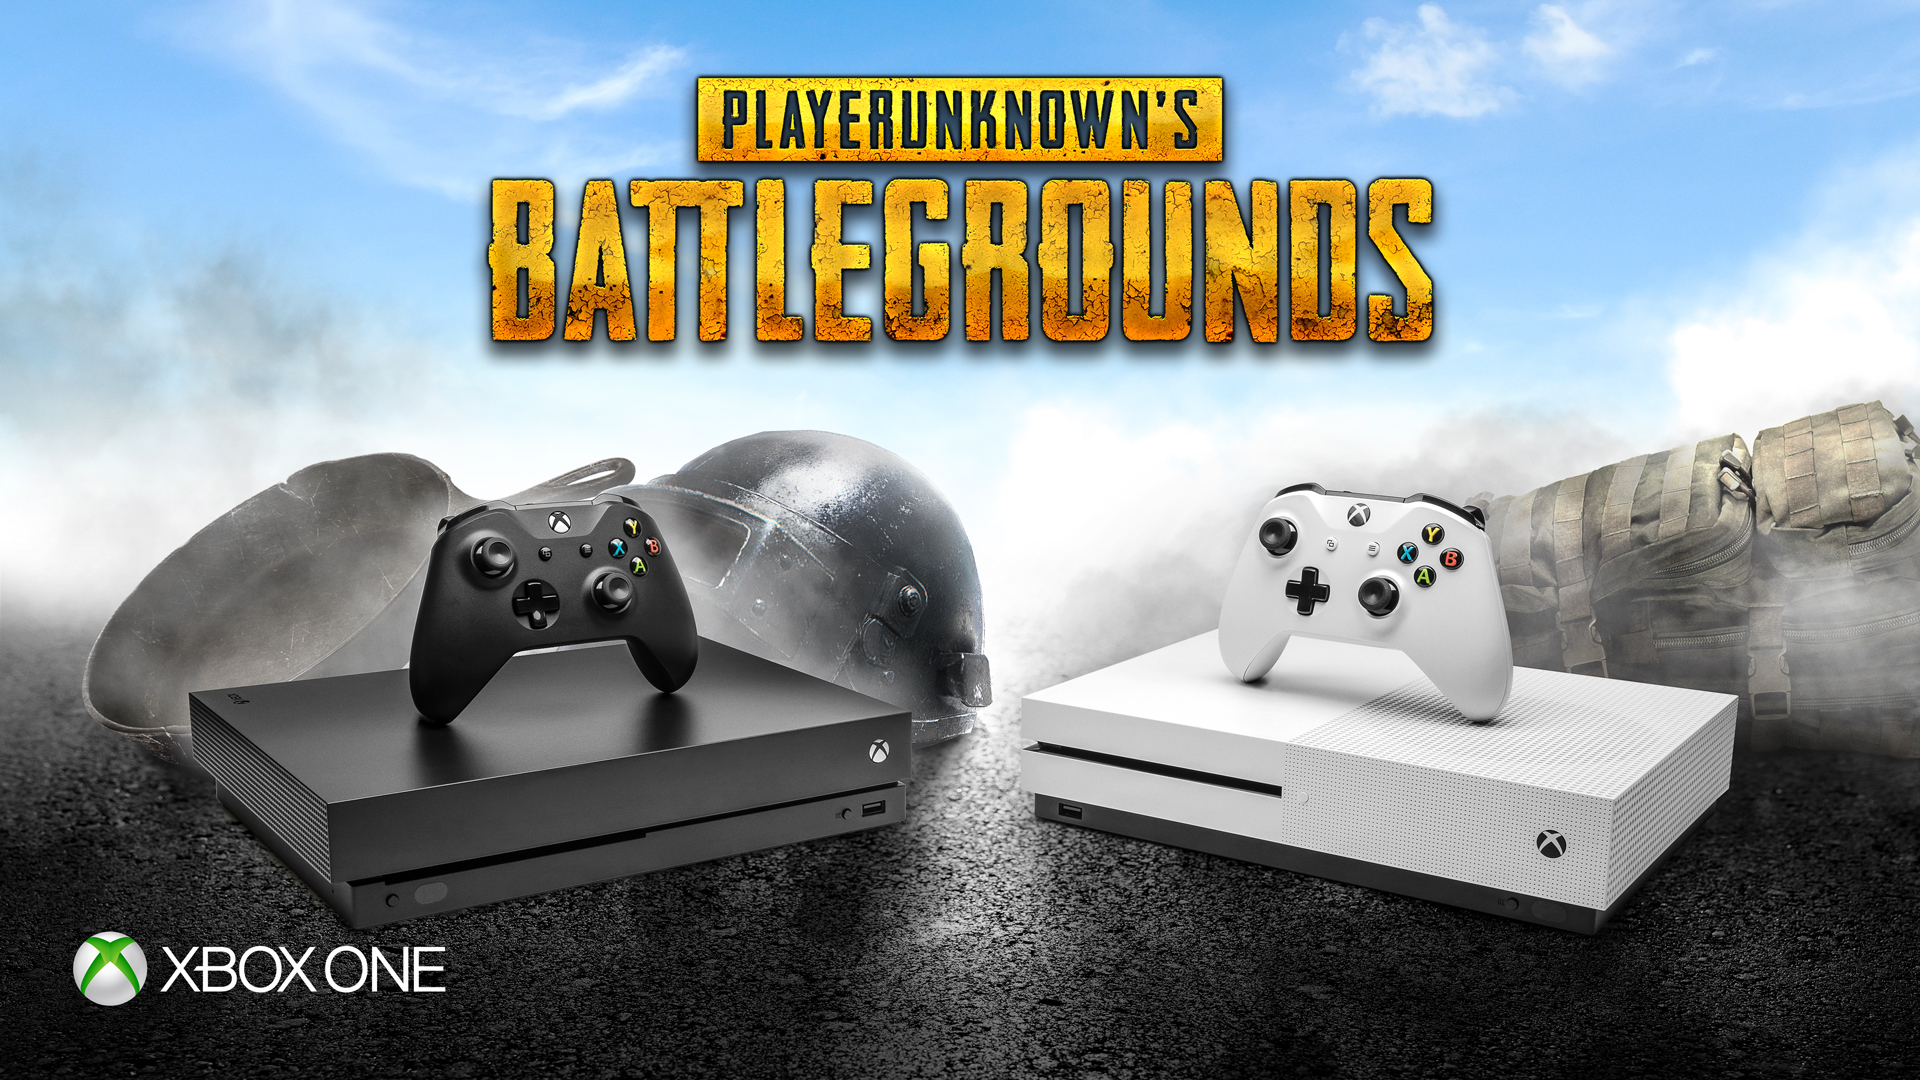 Photo of PlayerUnknown's Battlegrounds Console Launch Exclusive on Xbox One, Including Three Limited Edition Cosmetic Packs